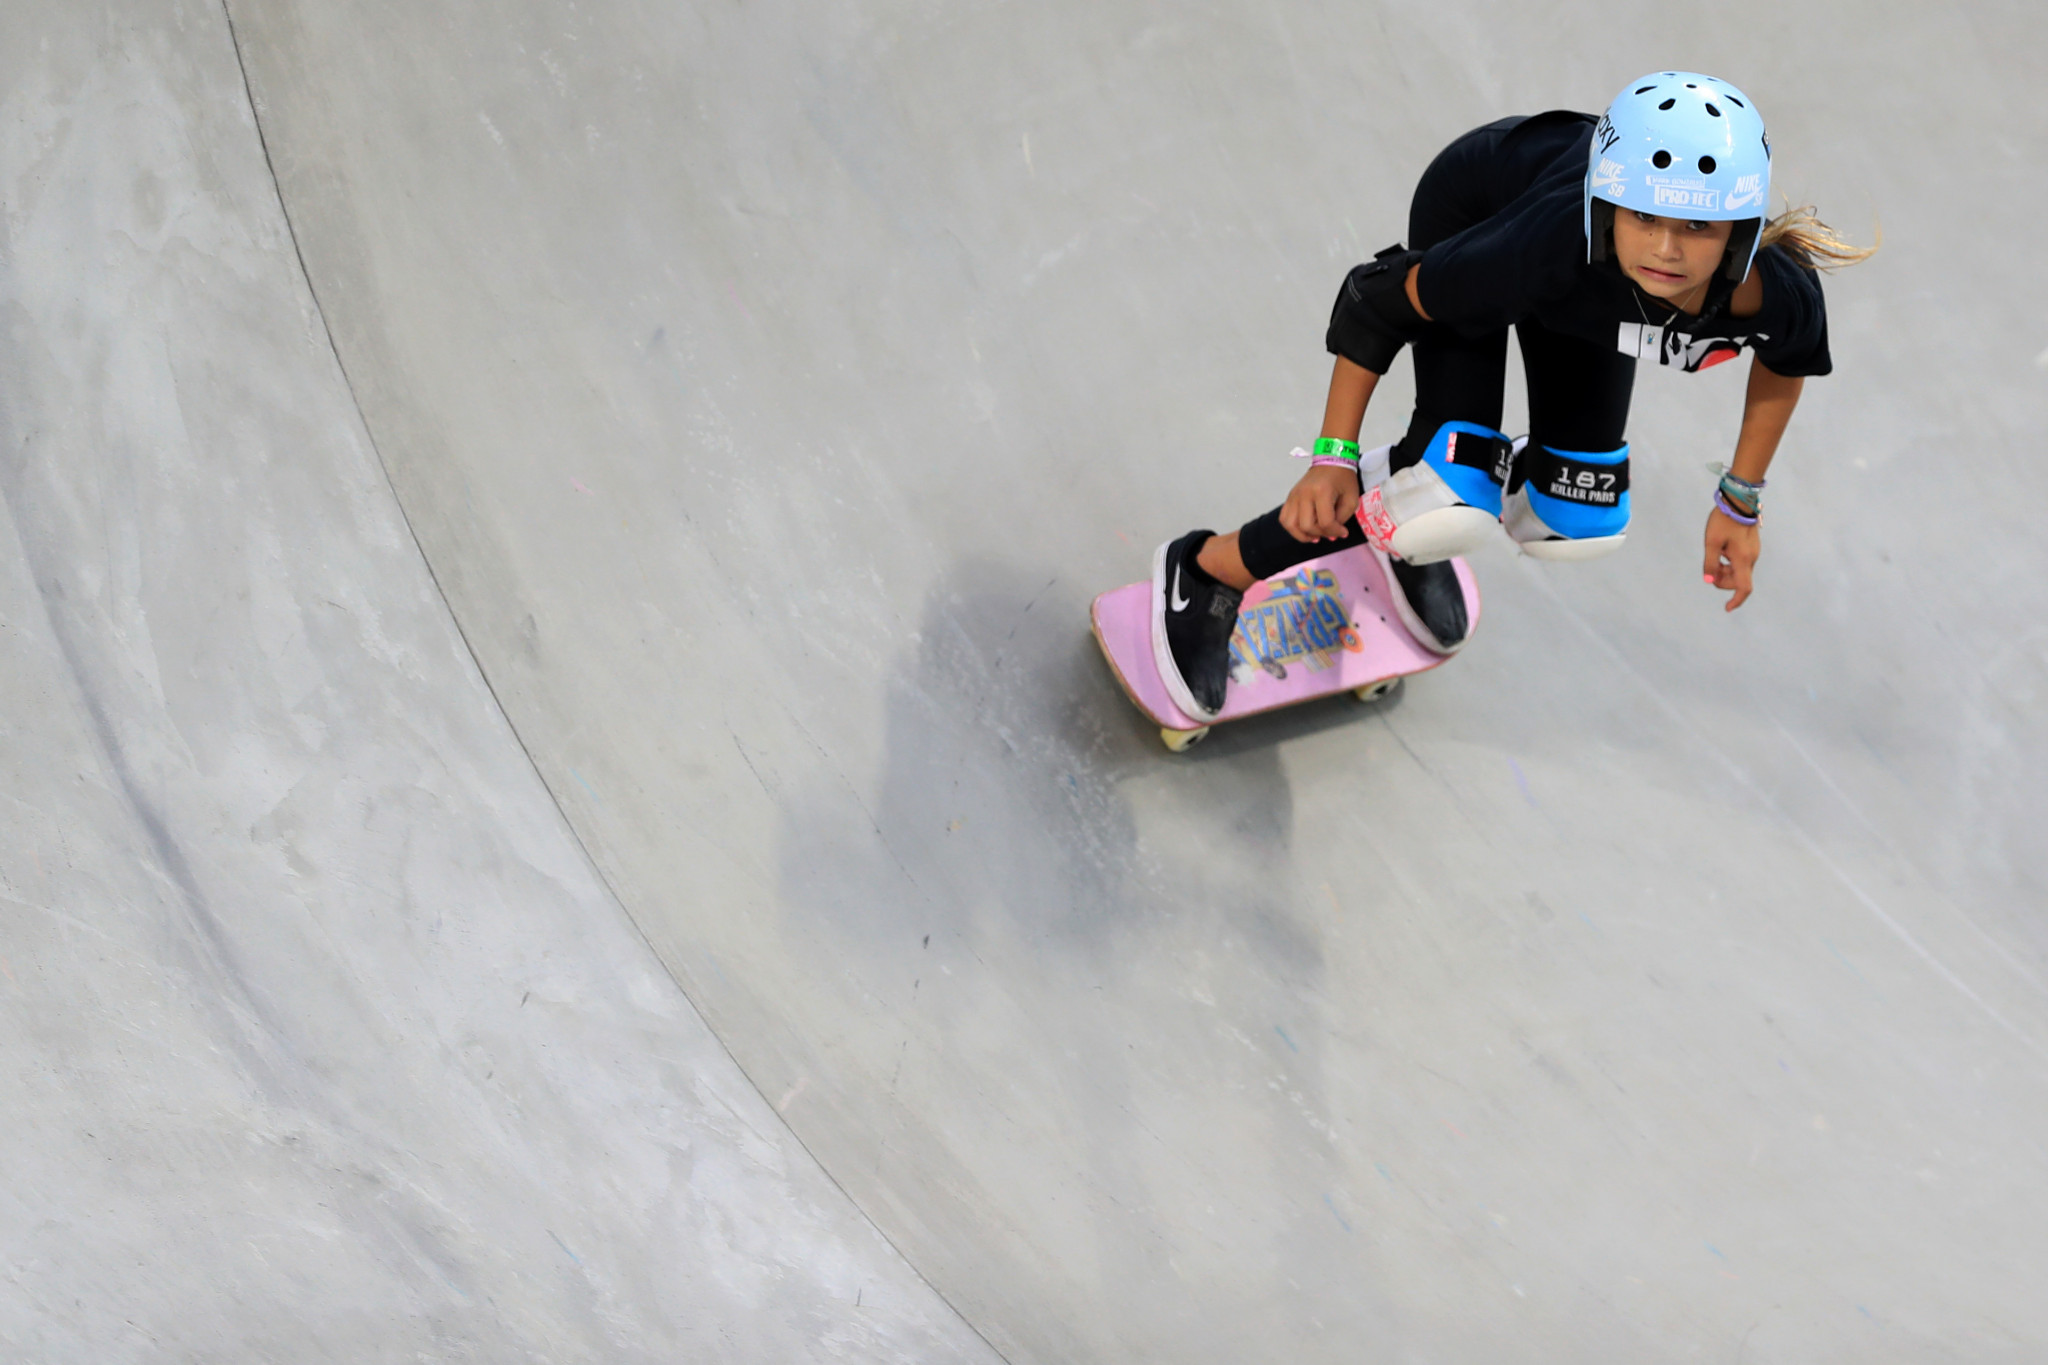 The 11-year-old has enjoyed some impressive results on the skateboarding circuit this year ©Getty Images